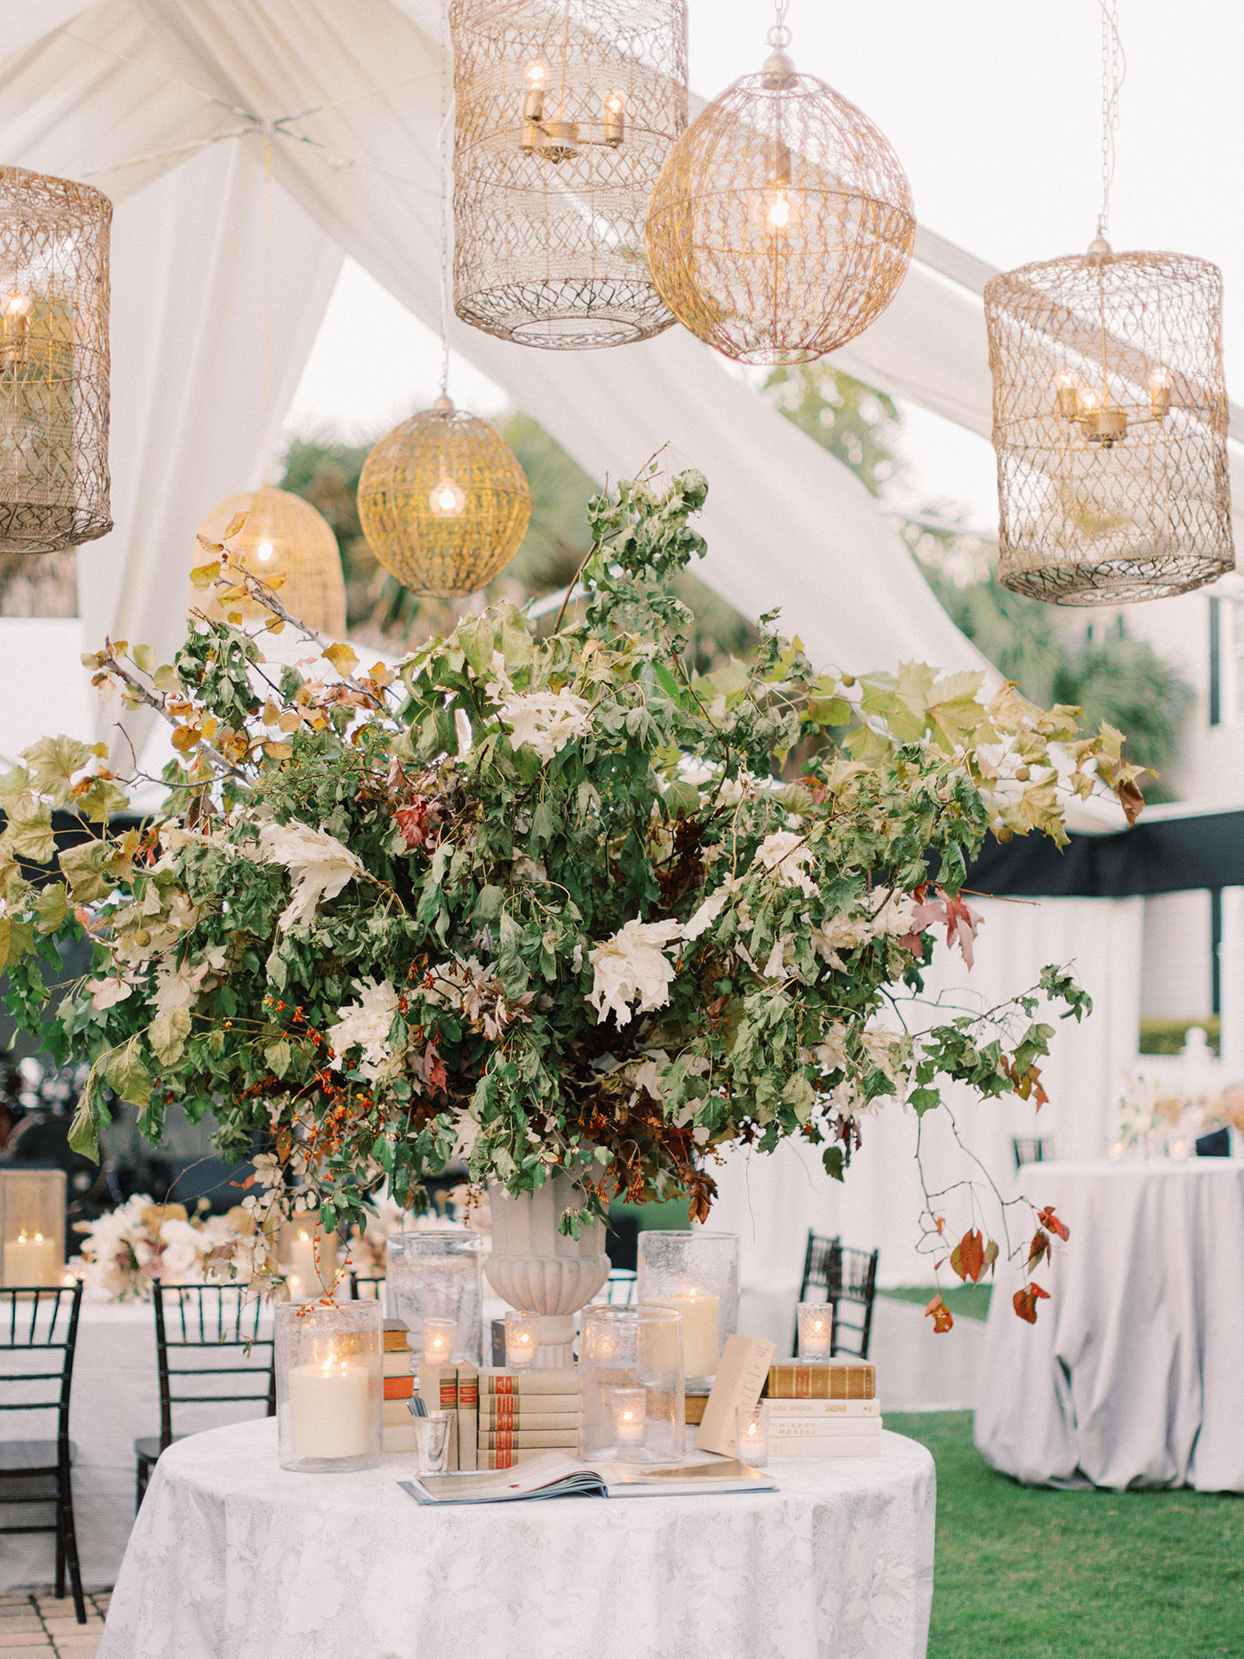 megan parking wedding reception guest book table in elegant tent with hanging lanterns